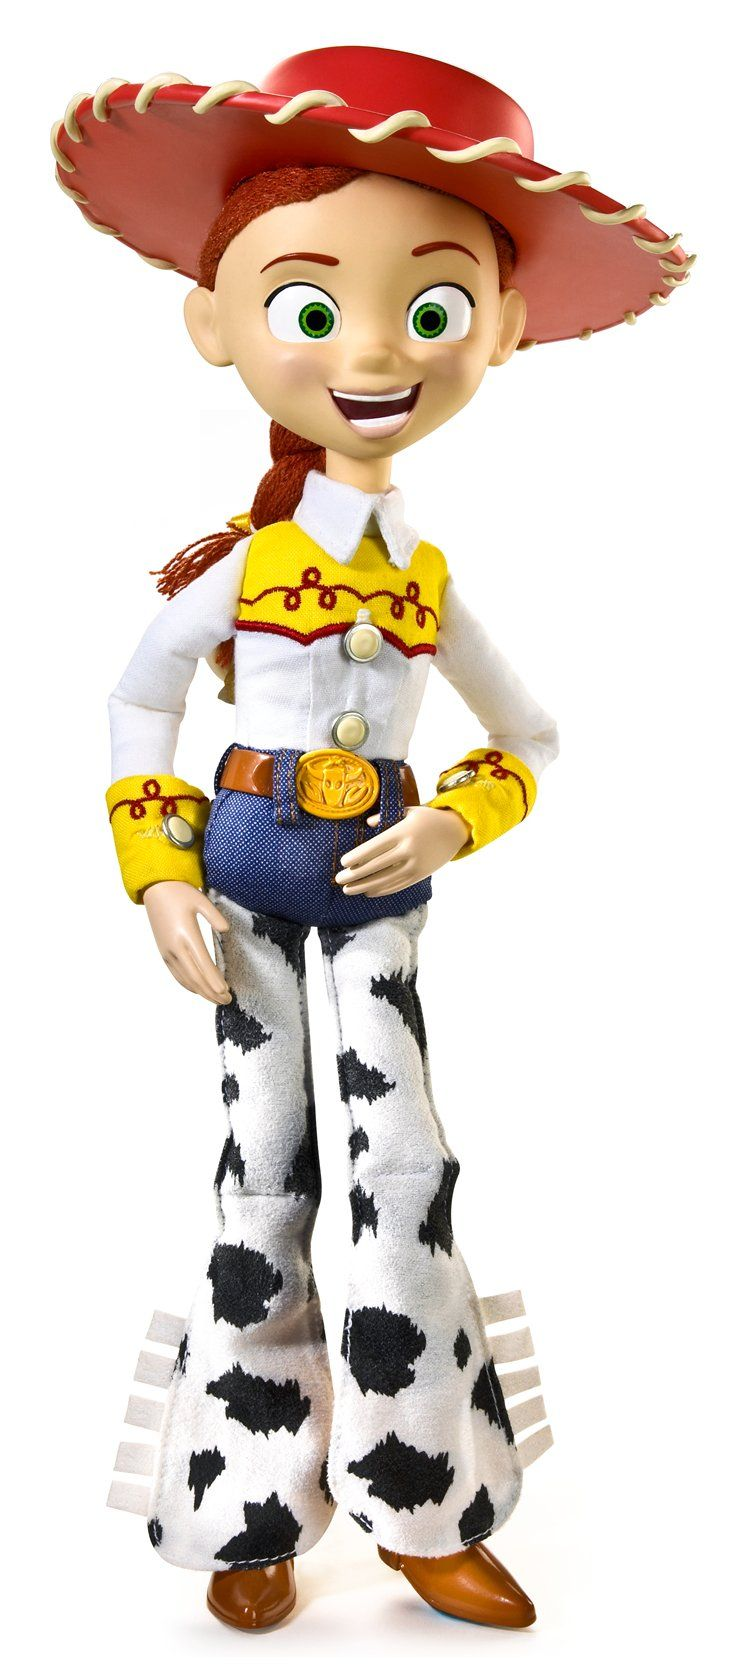 Jessie toy story 2 | movies I love | Pinterest | Jessie toy story ...